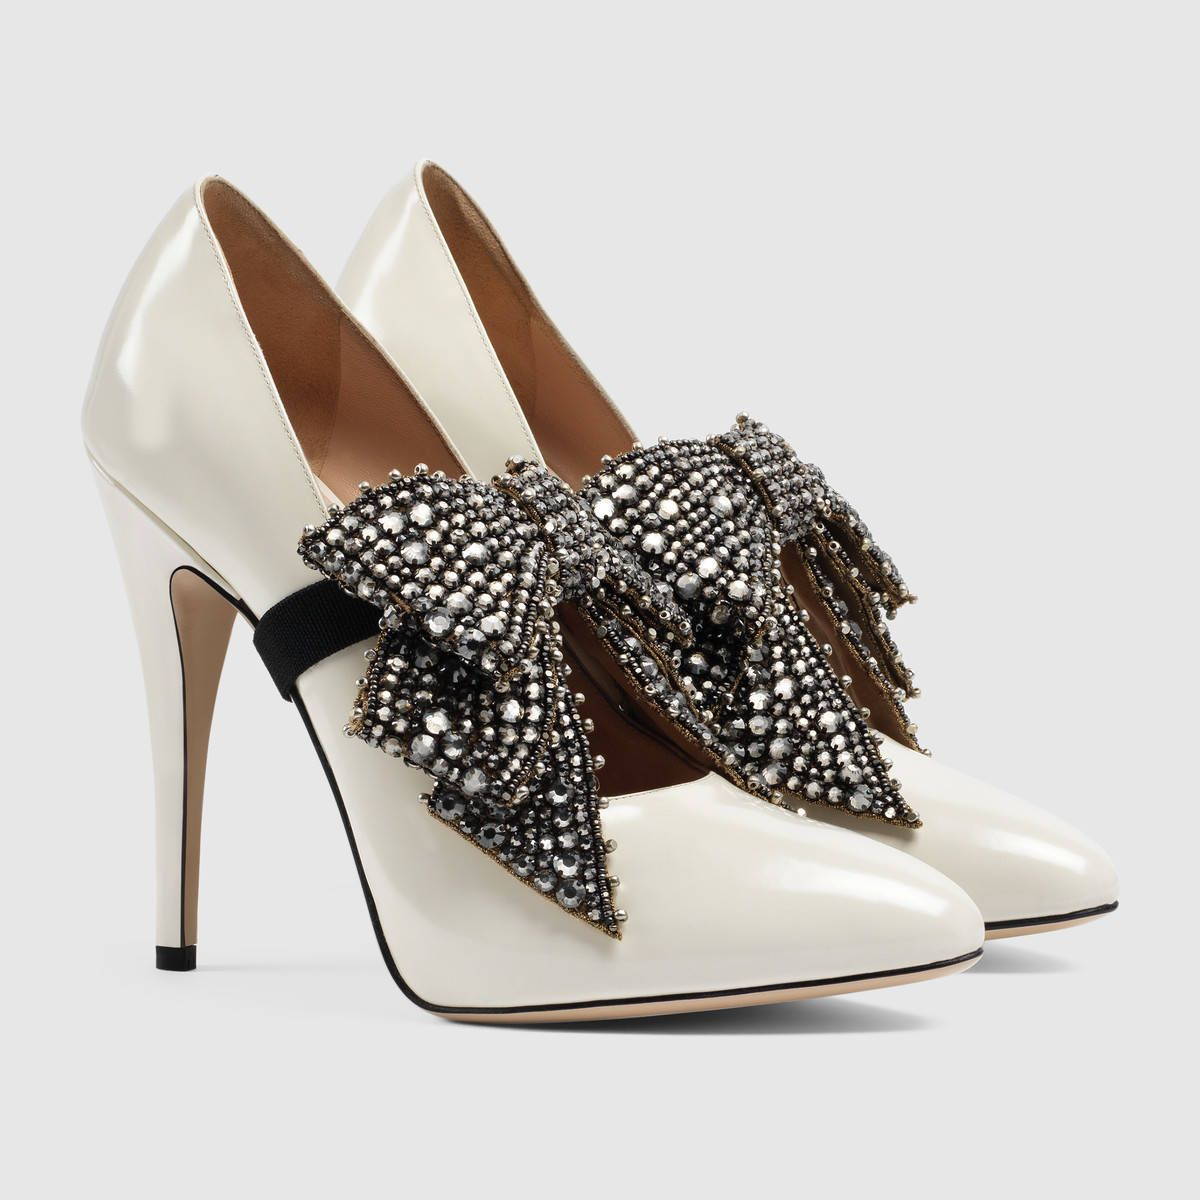 0e2957d922e825 Gucci Leather pump with crystal bow Detail 3